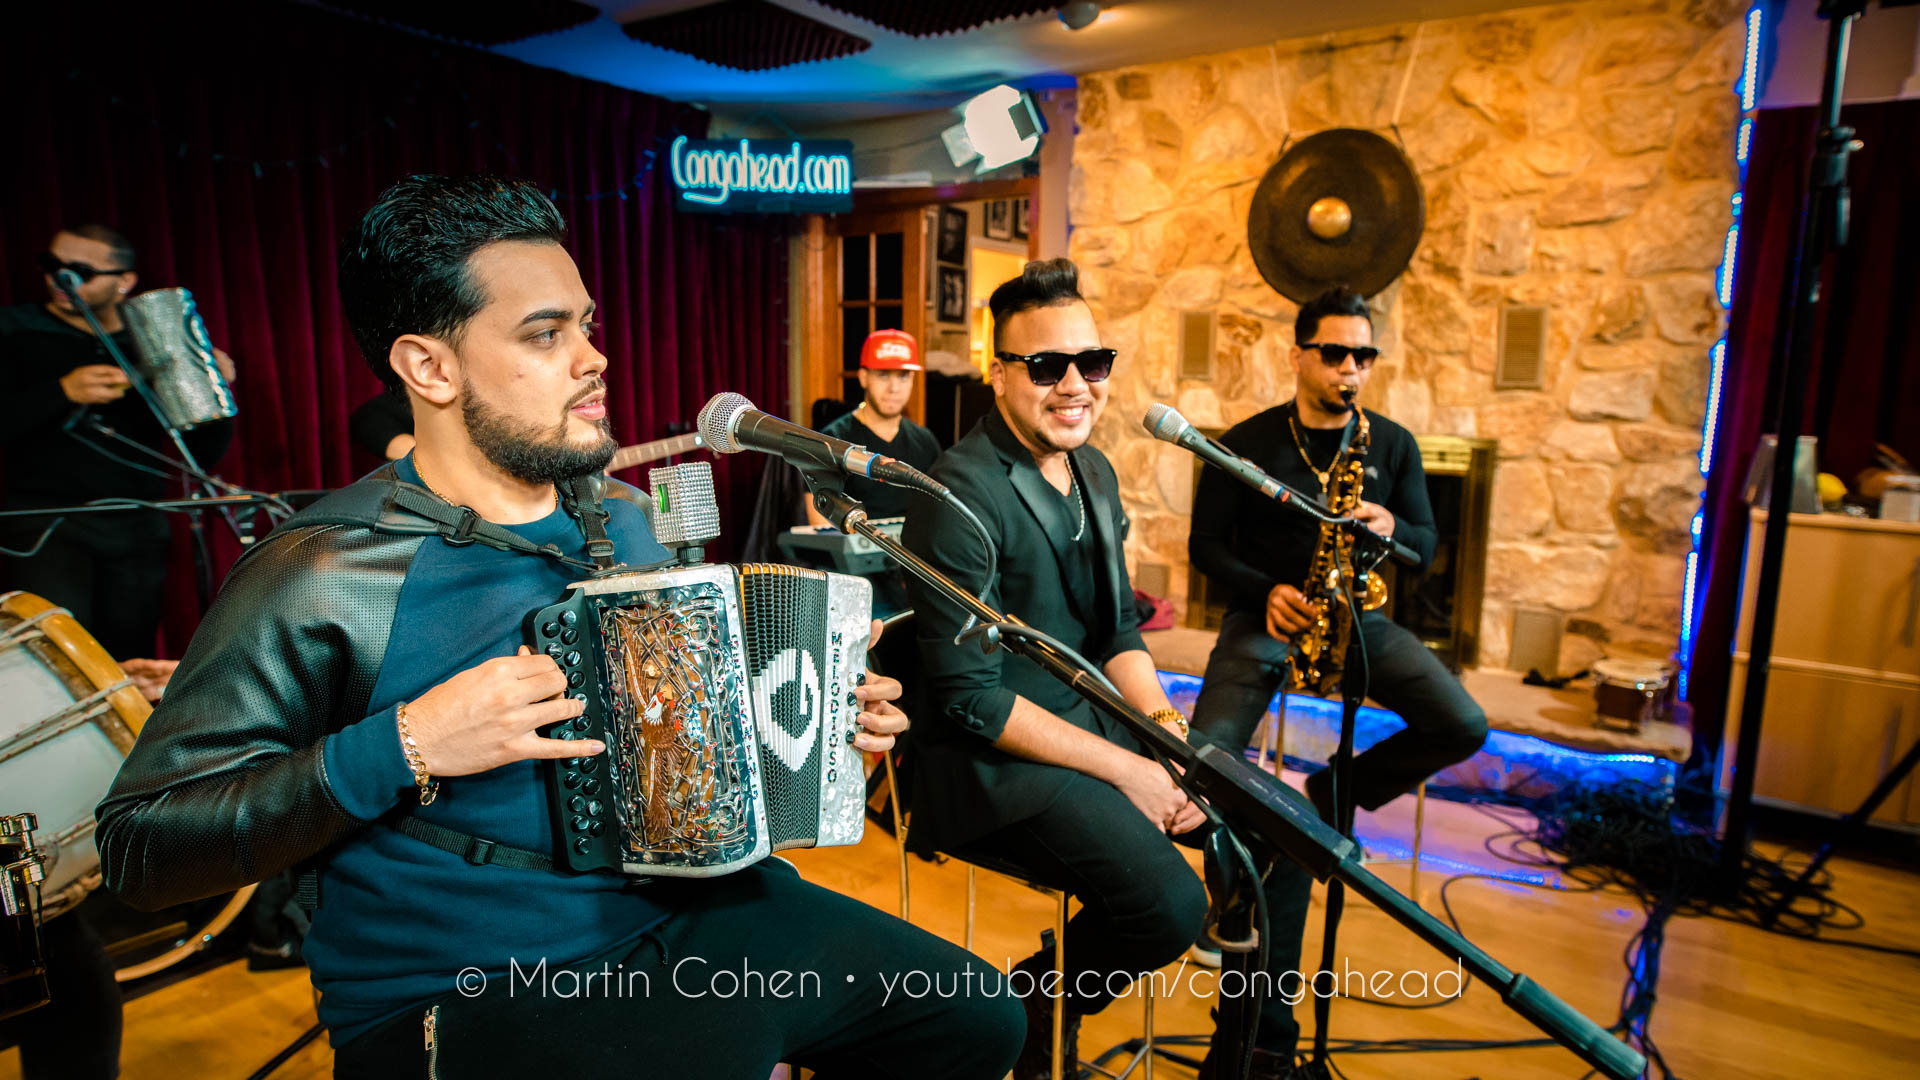 Tipico Urbano performs at Congahead Studios